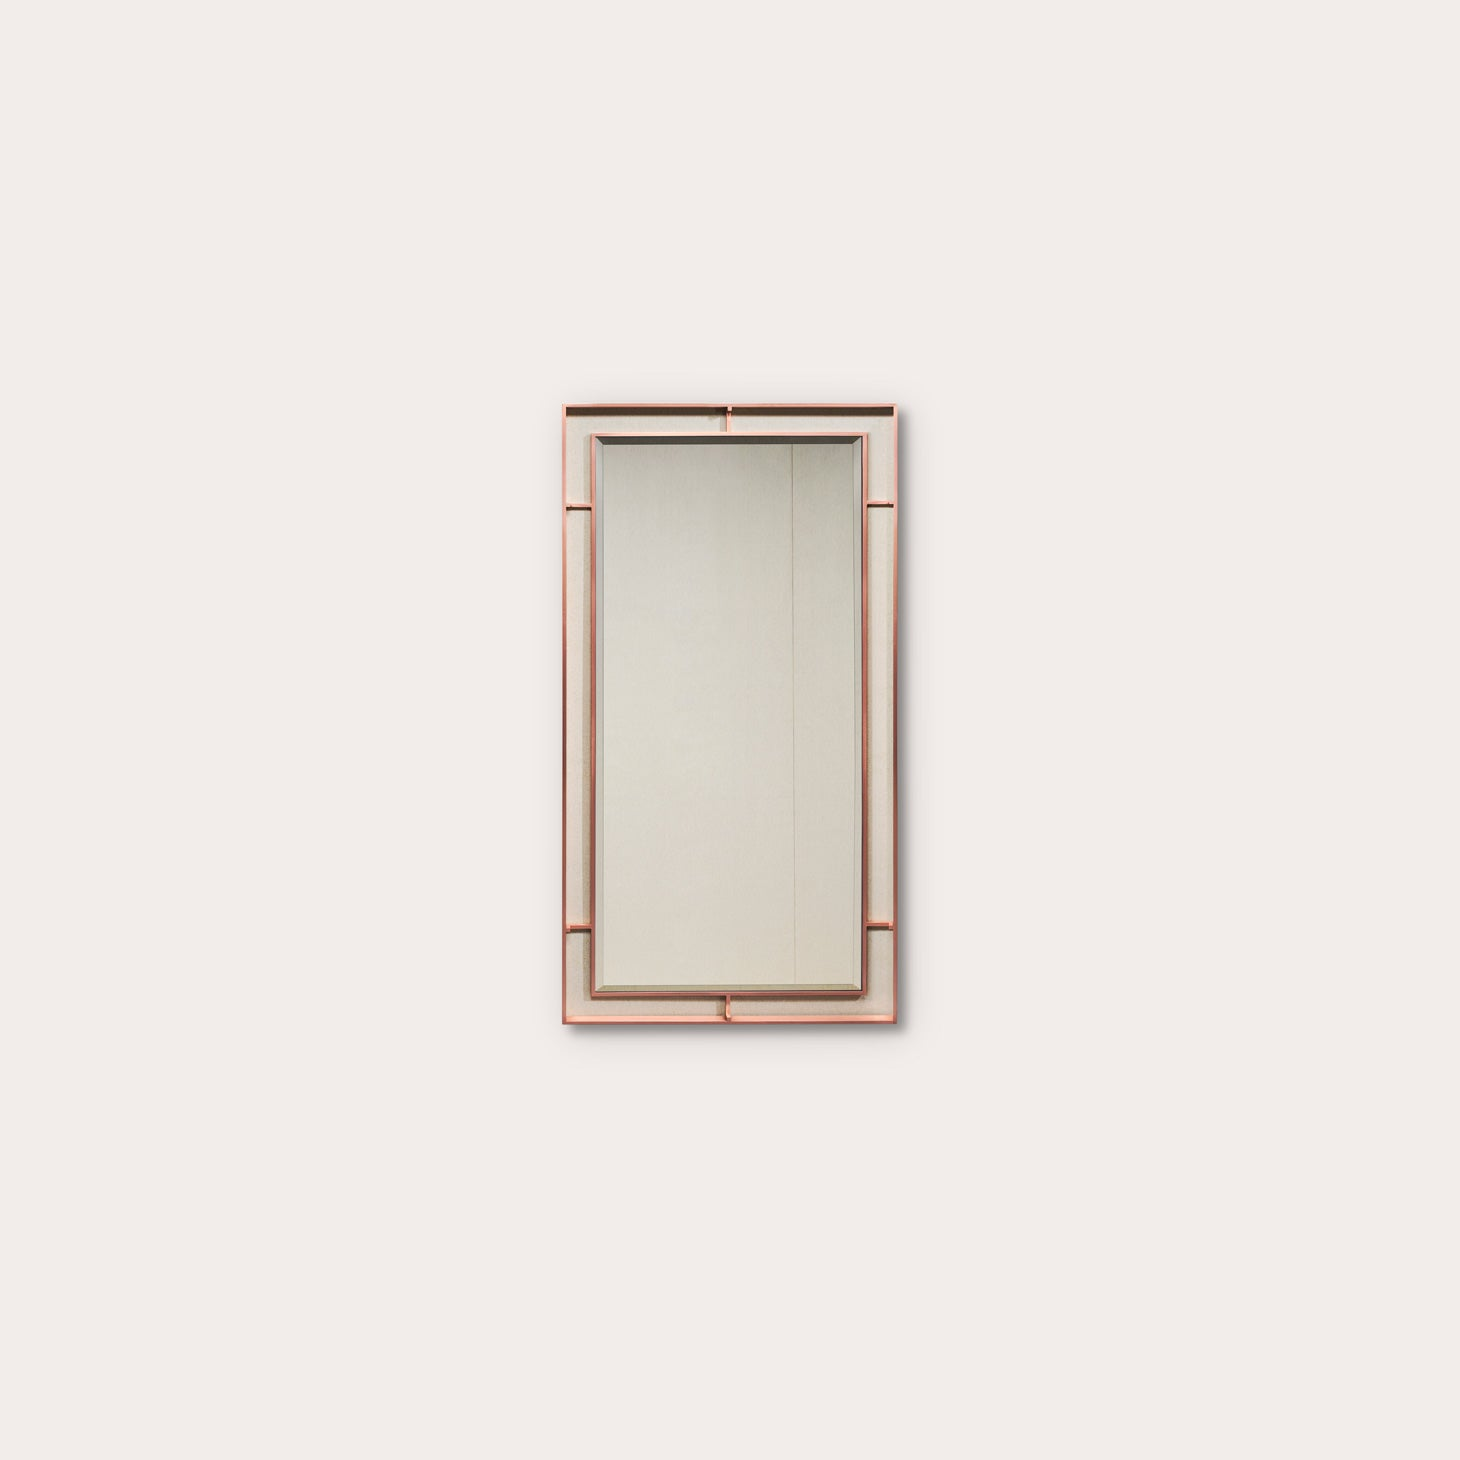 CAHIR Mirror Accessories Bruno Moinard Designer Furniture Sku: 773-100-10003